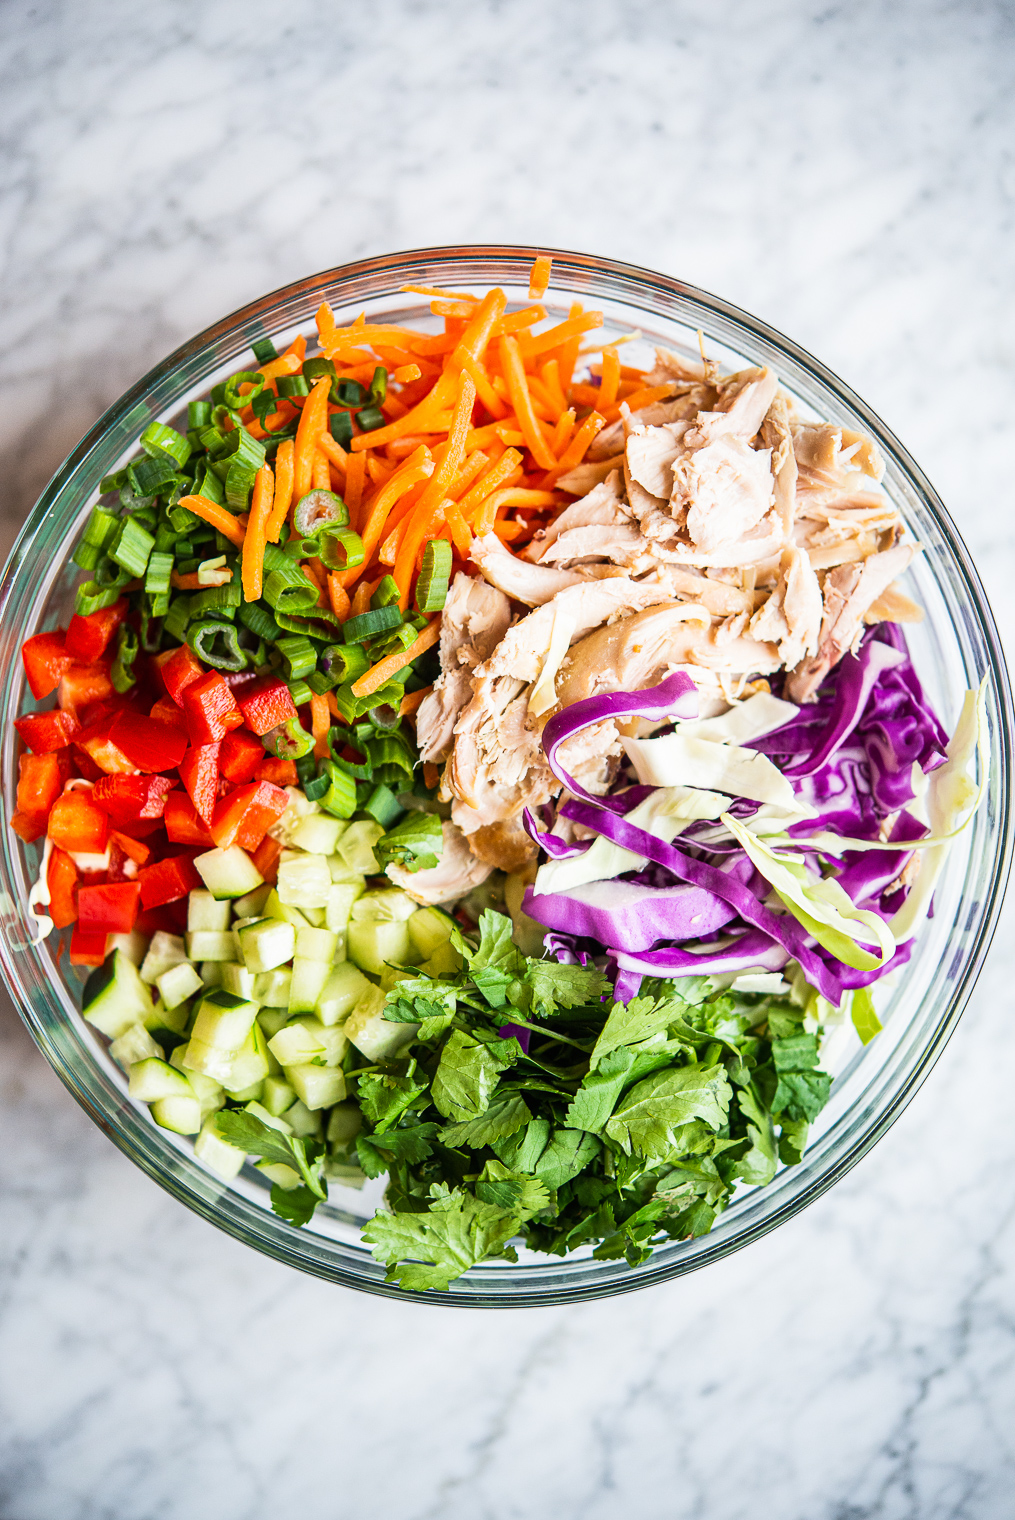 thai chopped chicken salad ingredients: carrots, cucumber, bell pepper, cabbage, chicken, and cilantro in a large glass bowl on a marble surface